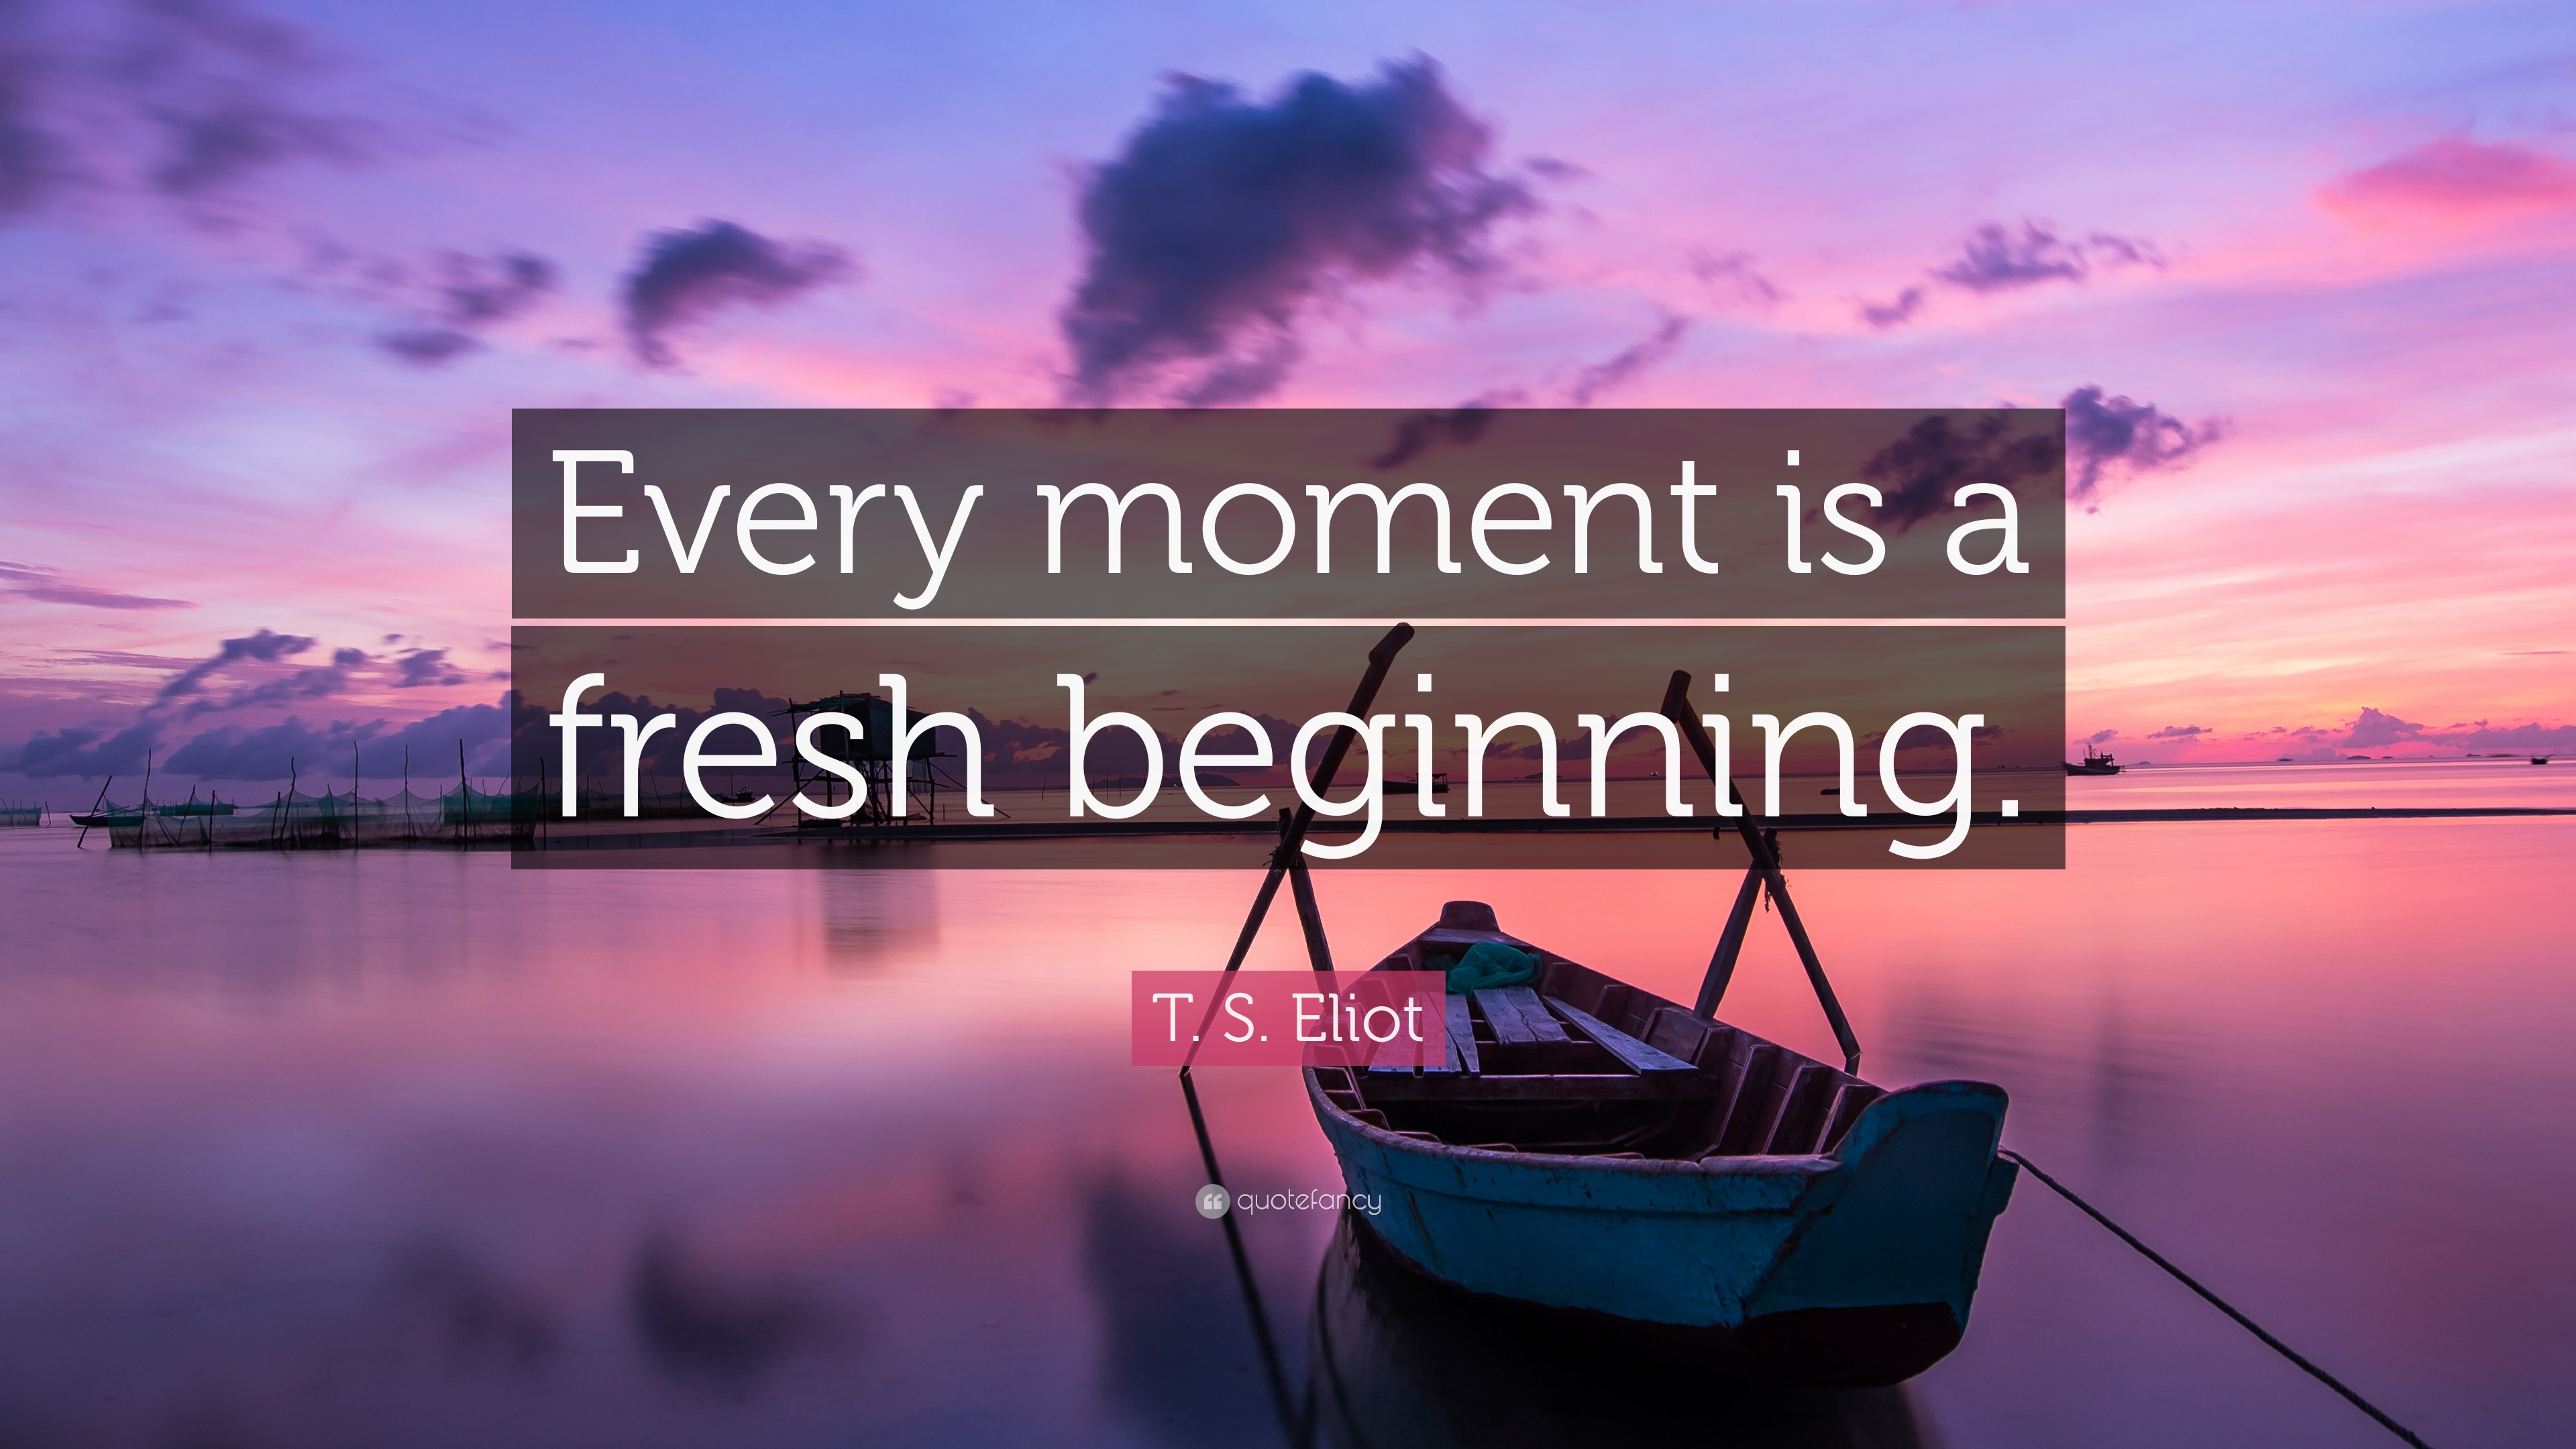 every of moment_Life Quotes (100 wallpapers) - Quotefancy